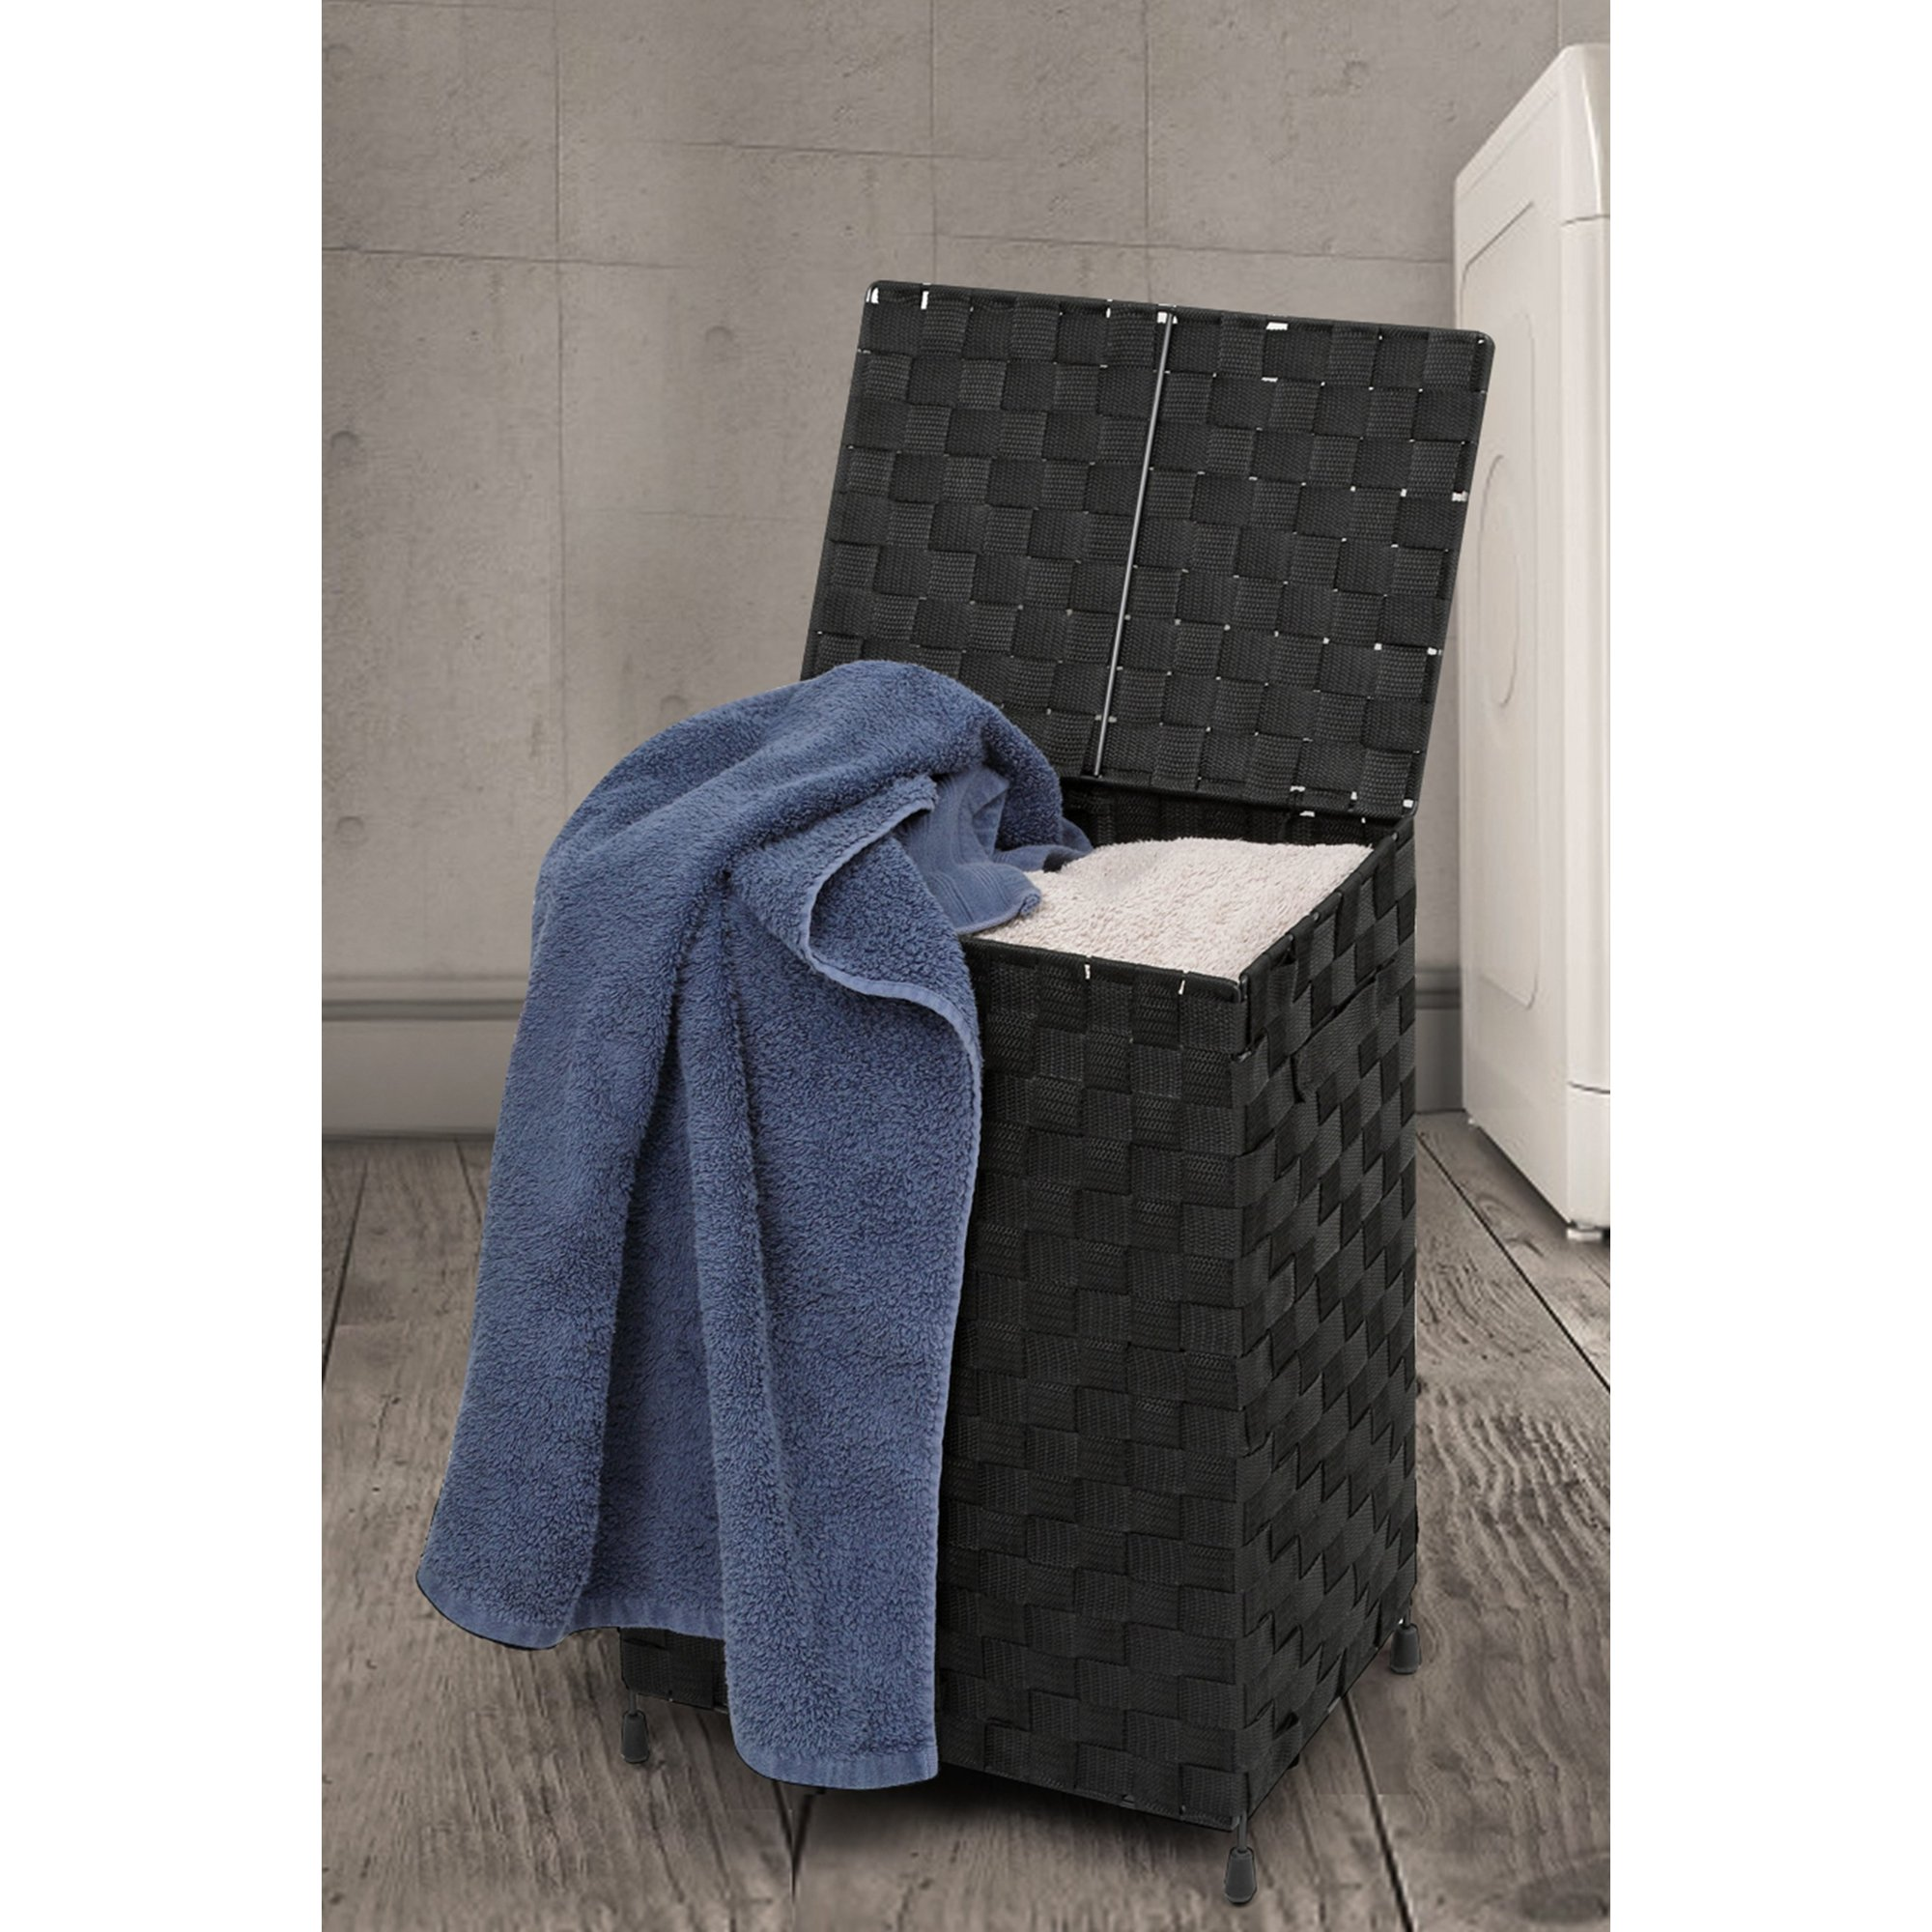 Image of Arpan Folding Laundry Hamper